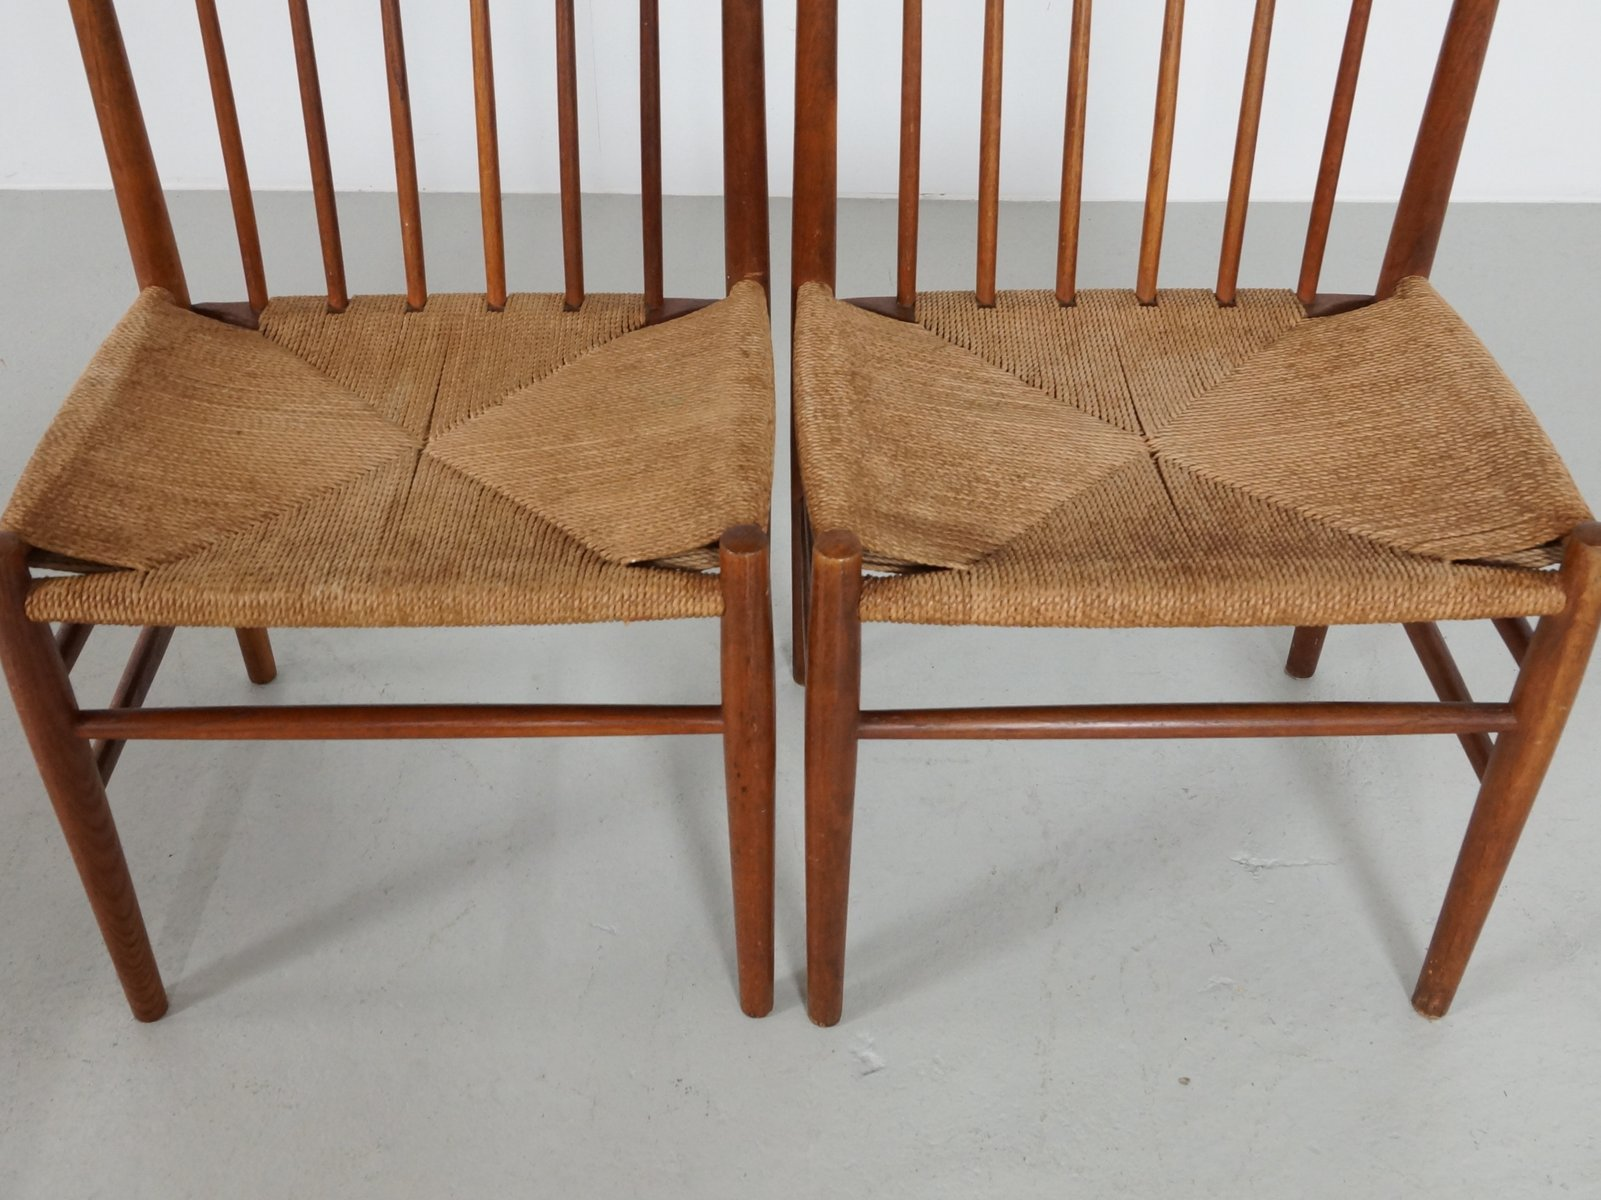 Scandinavian Dining Chairs in Oak and Paper Cord by J¸rgen B¦kmark